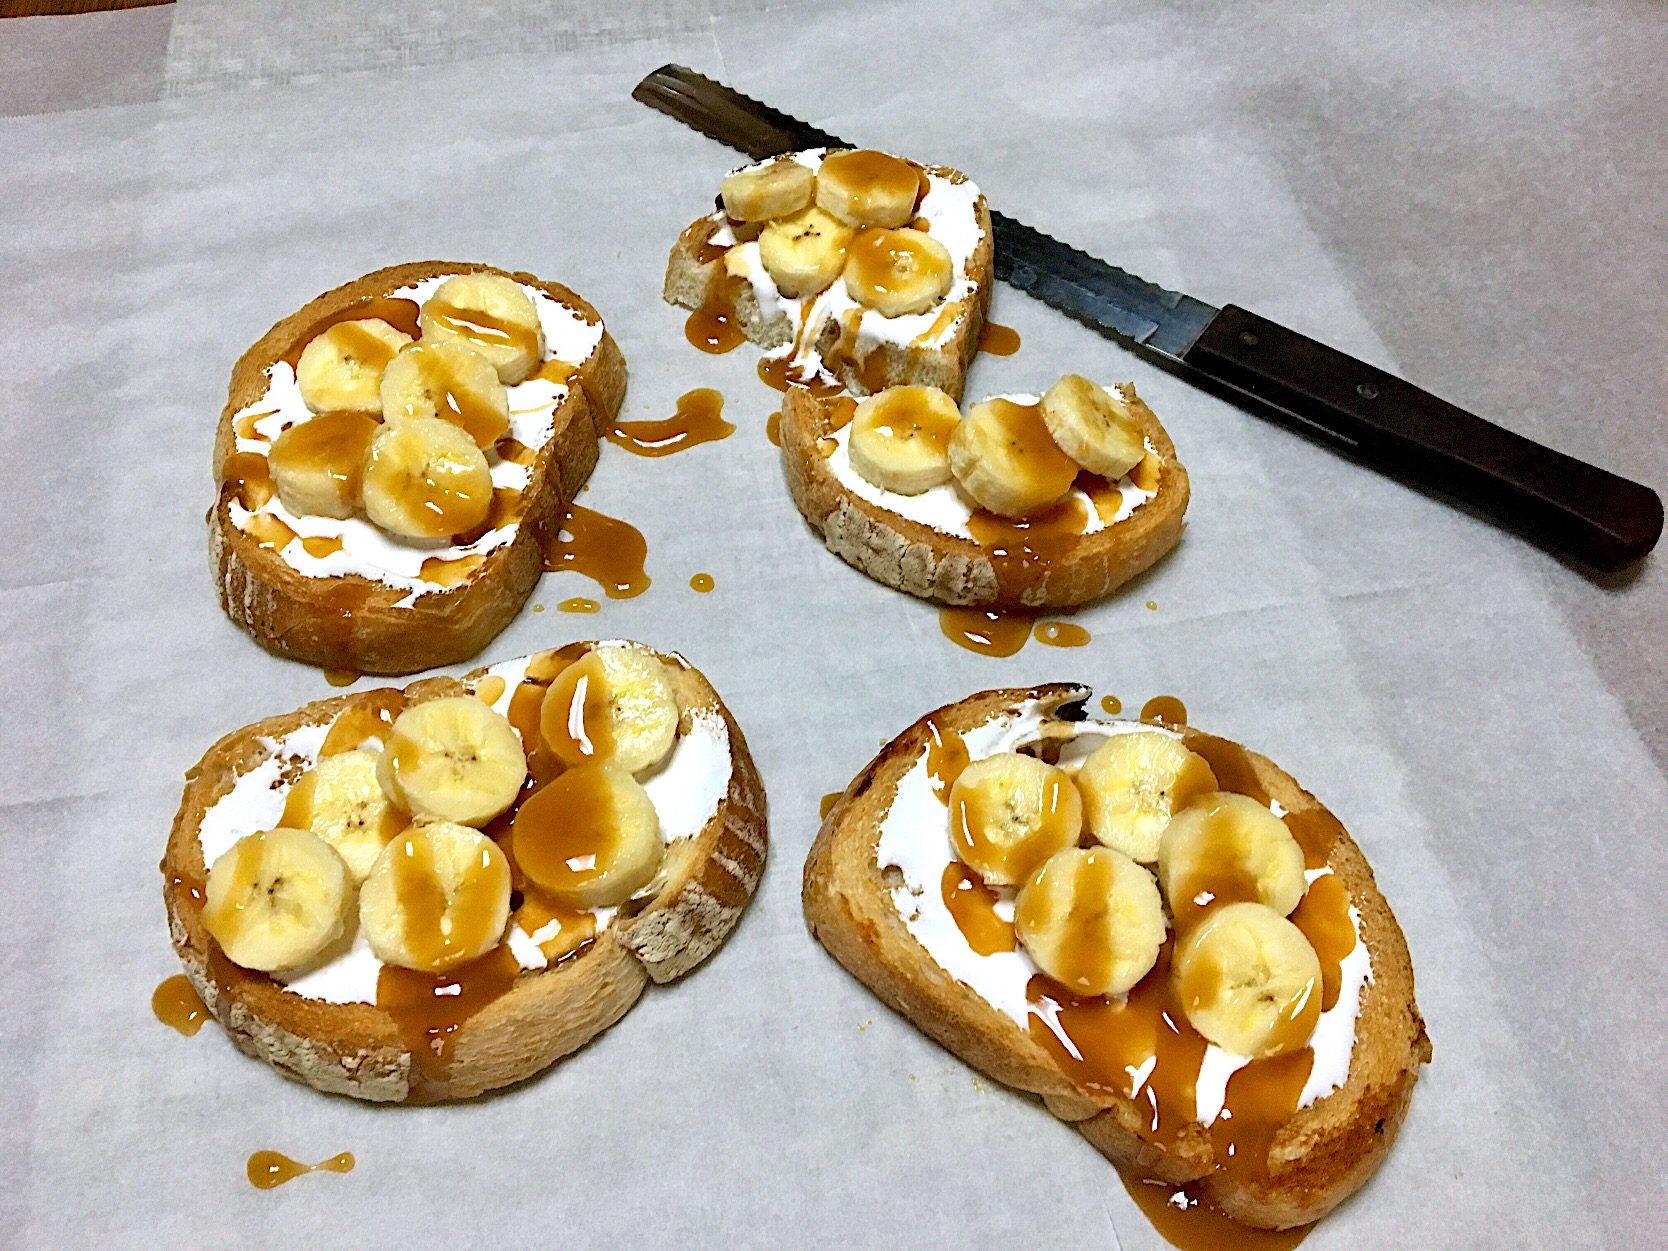 ✨Banana toast with marshmallow fluff ,caramel syrup & walnuts...バナナトースト🍌✨